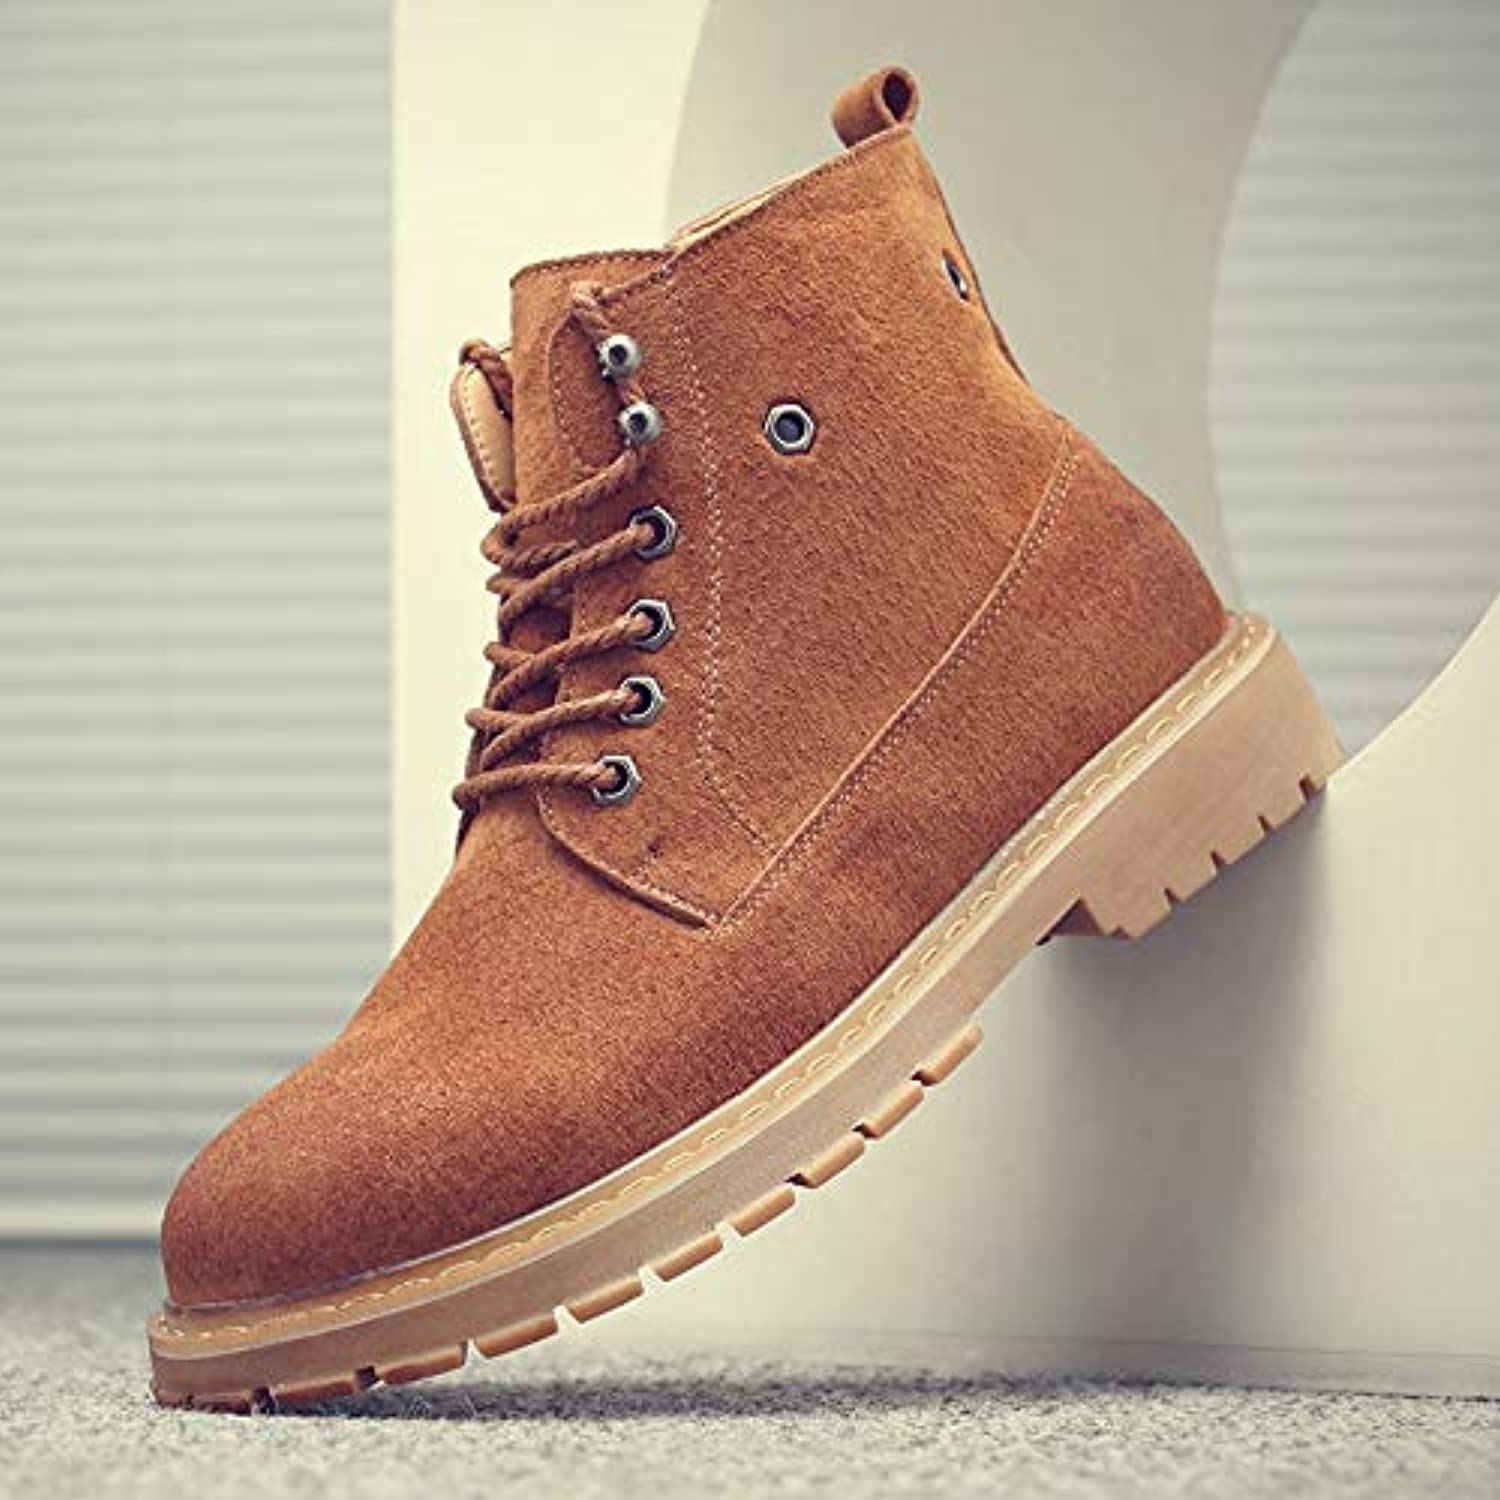 ZyuQ Ankle boots Boots Men'S High Help Martin Boots Men'S Pu Help Tooling Boots Autumn And Winter Fashion Boots